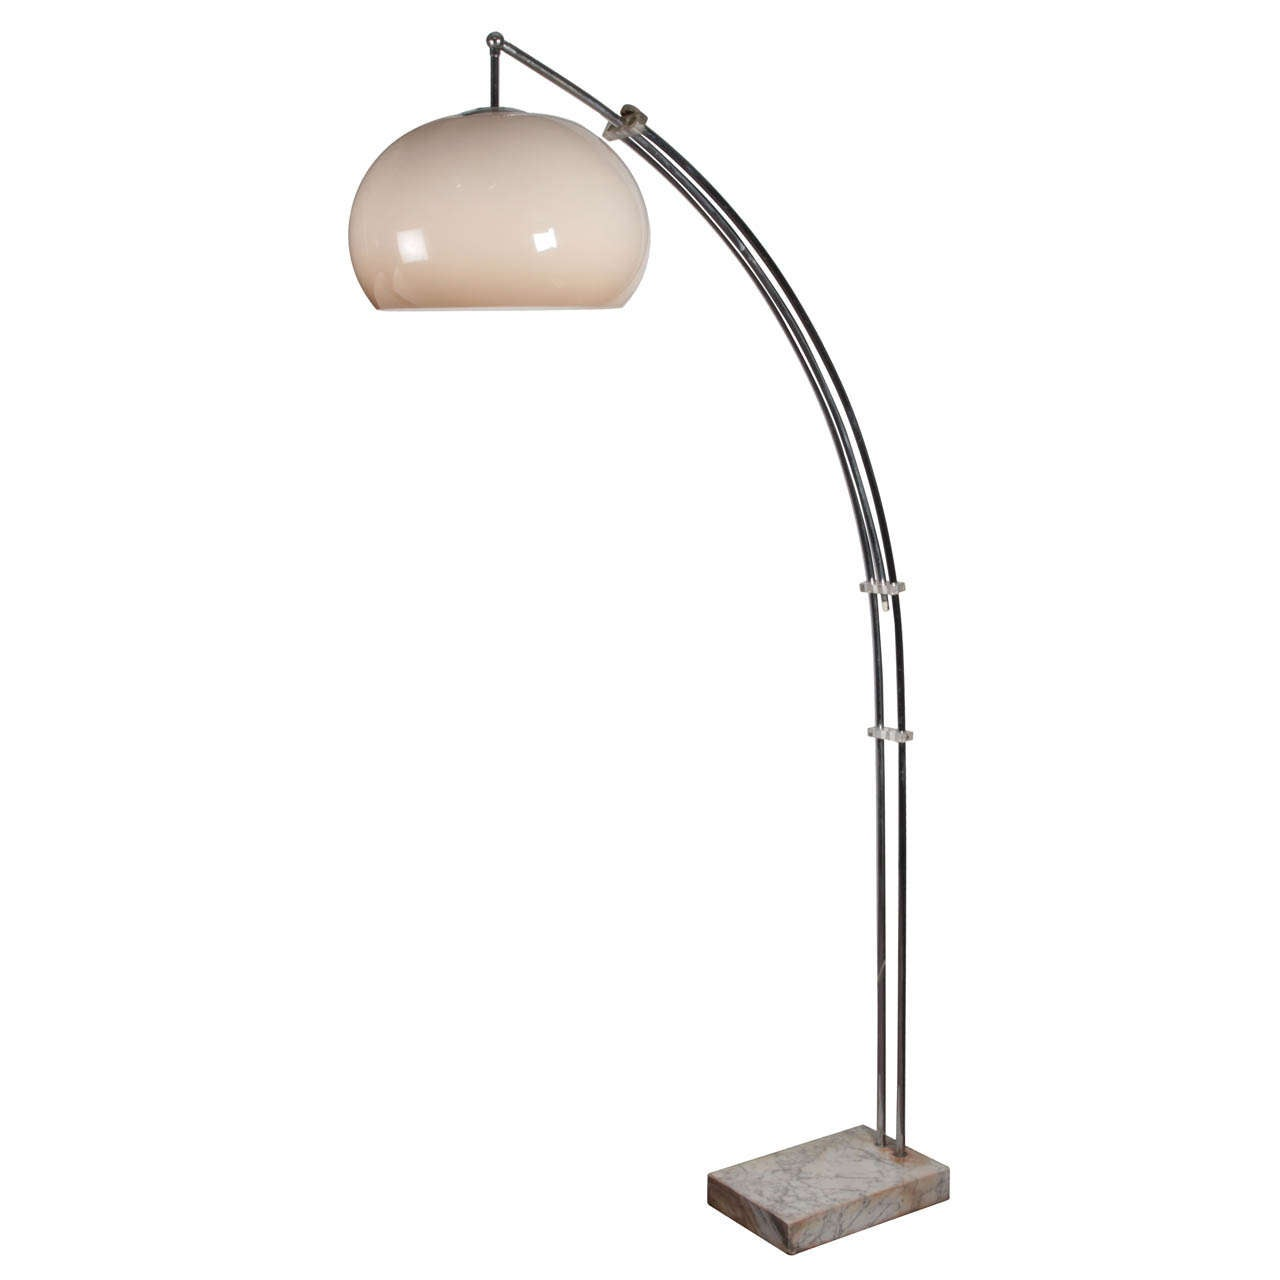 Small Arc Floor Lamp Adjustable Mid Century Arc Floor Lamp With Original Shade Guzzini